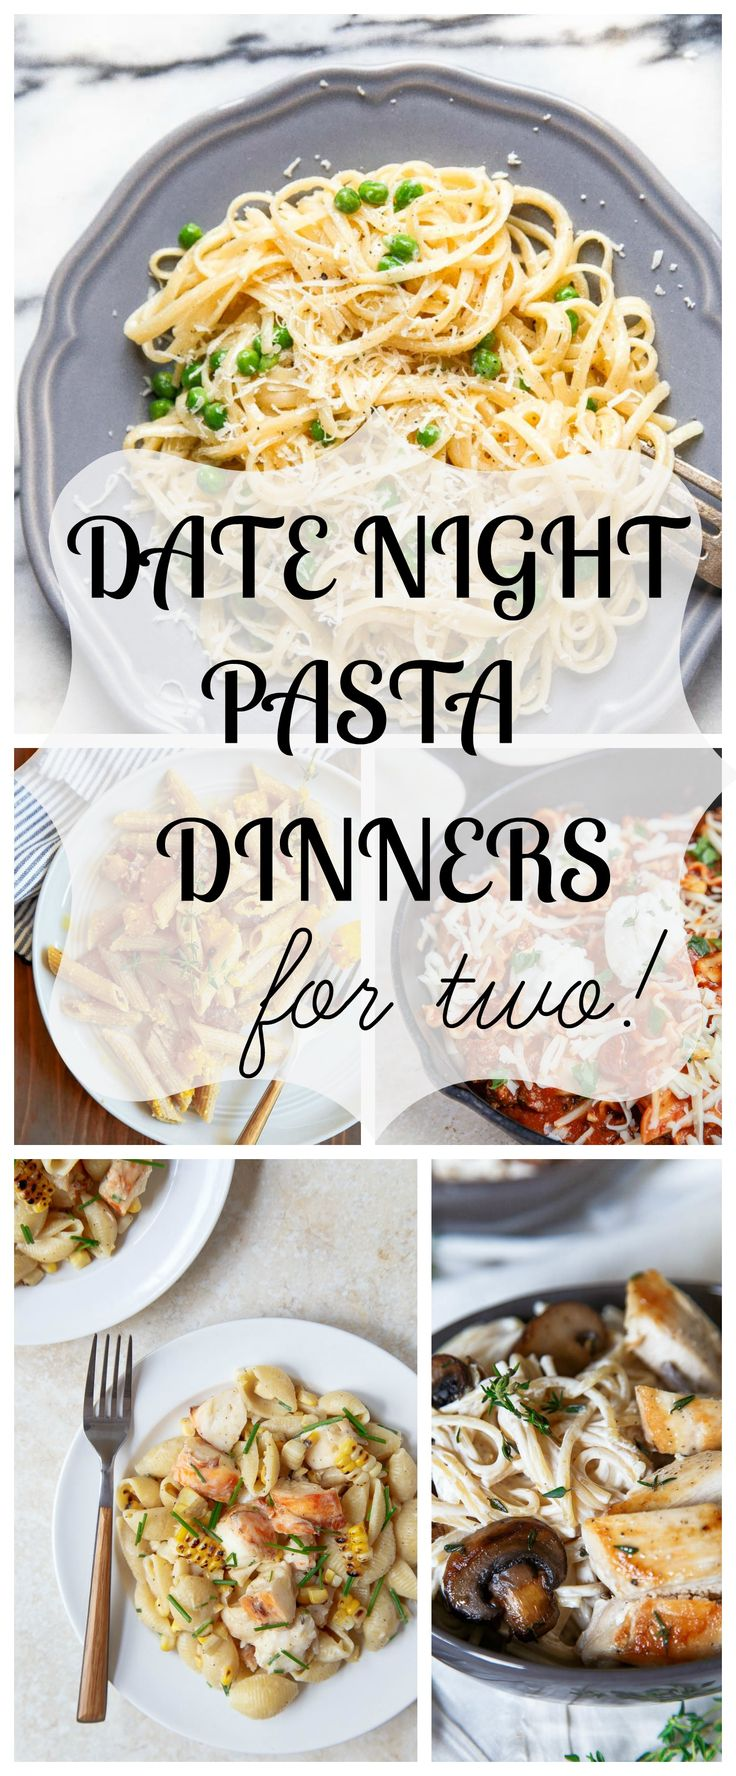 Best 10+ Date night dinners ideas on Pinterest | Date night meals ...